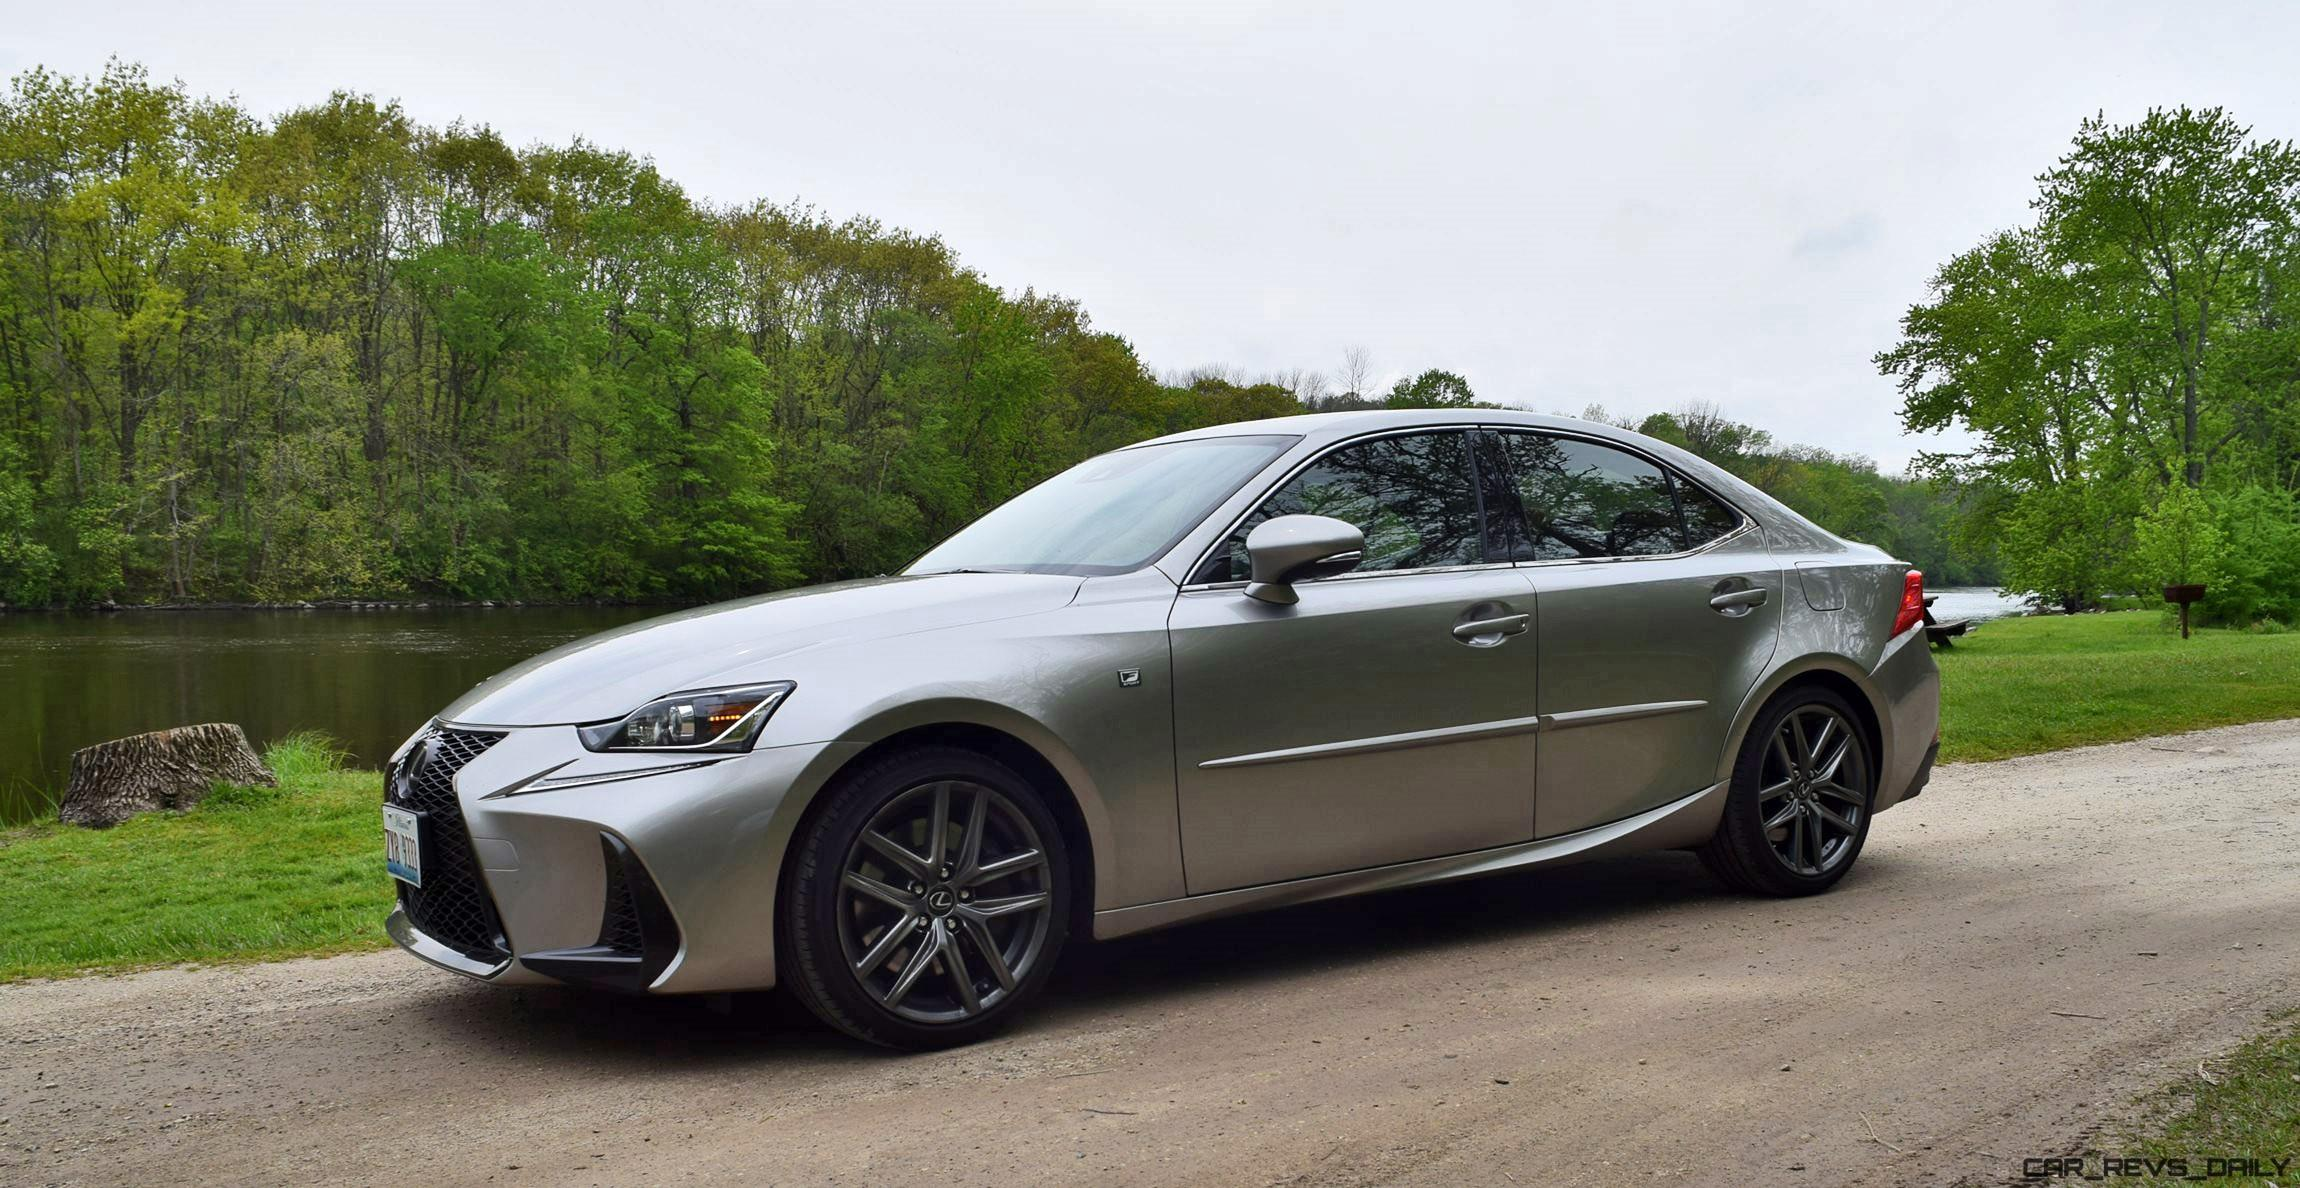 2017 Lexus IS350 F Sport RWD - Road Test Review ...